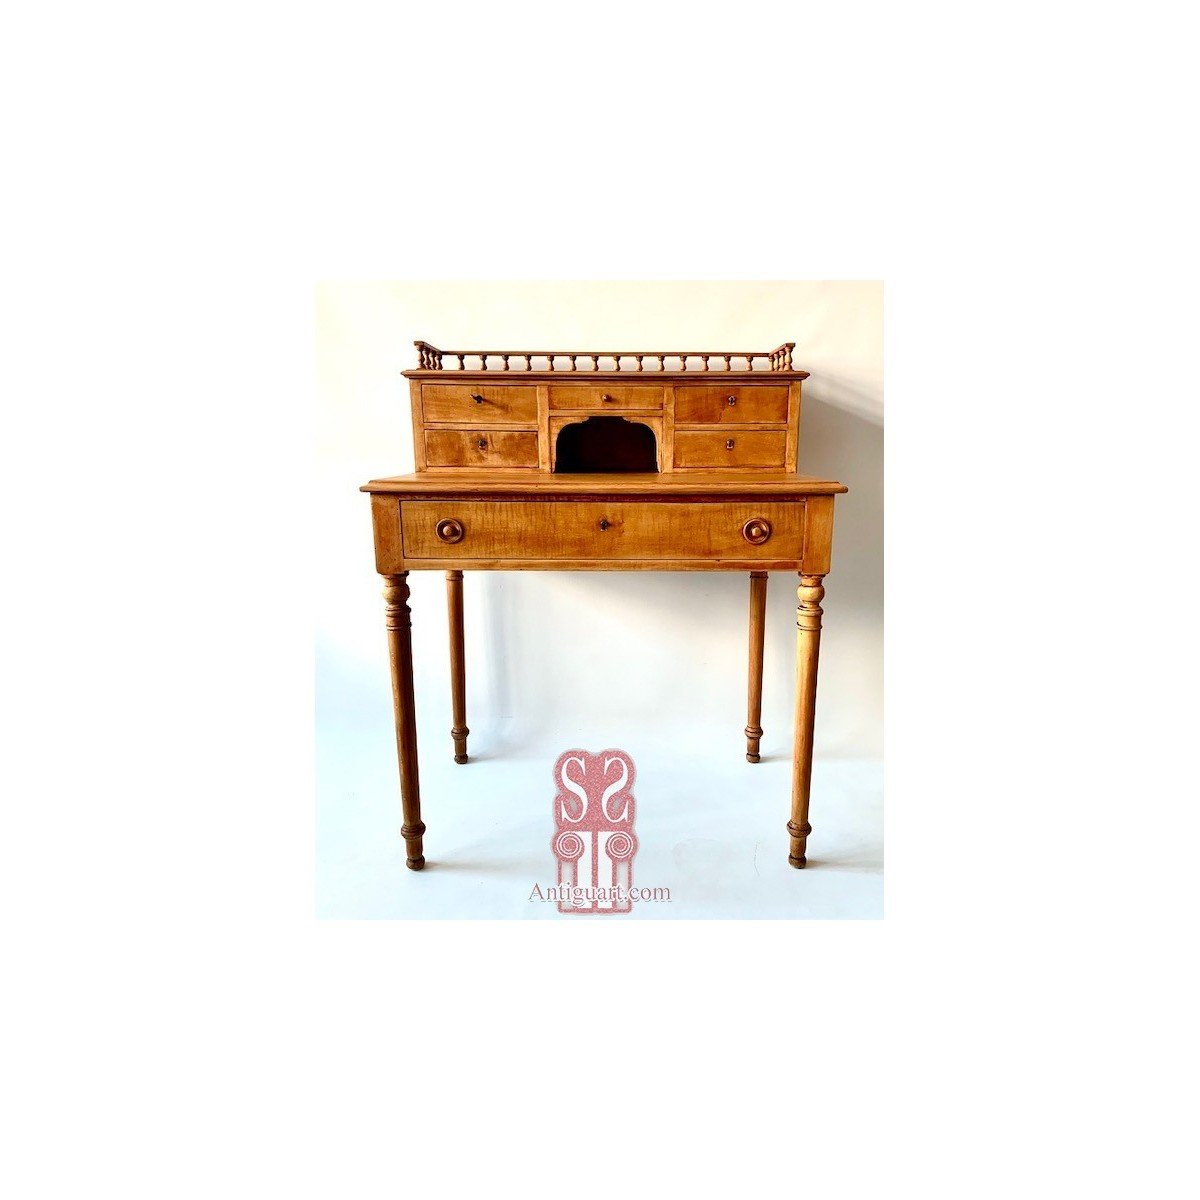 Laminated writing desk in maple, late 19th